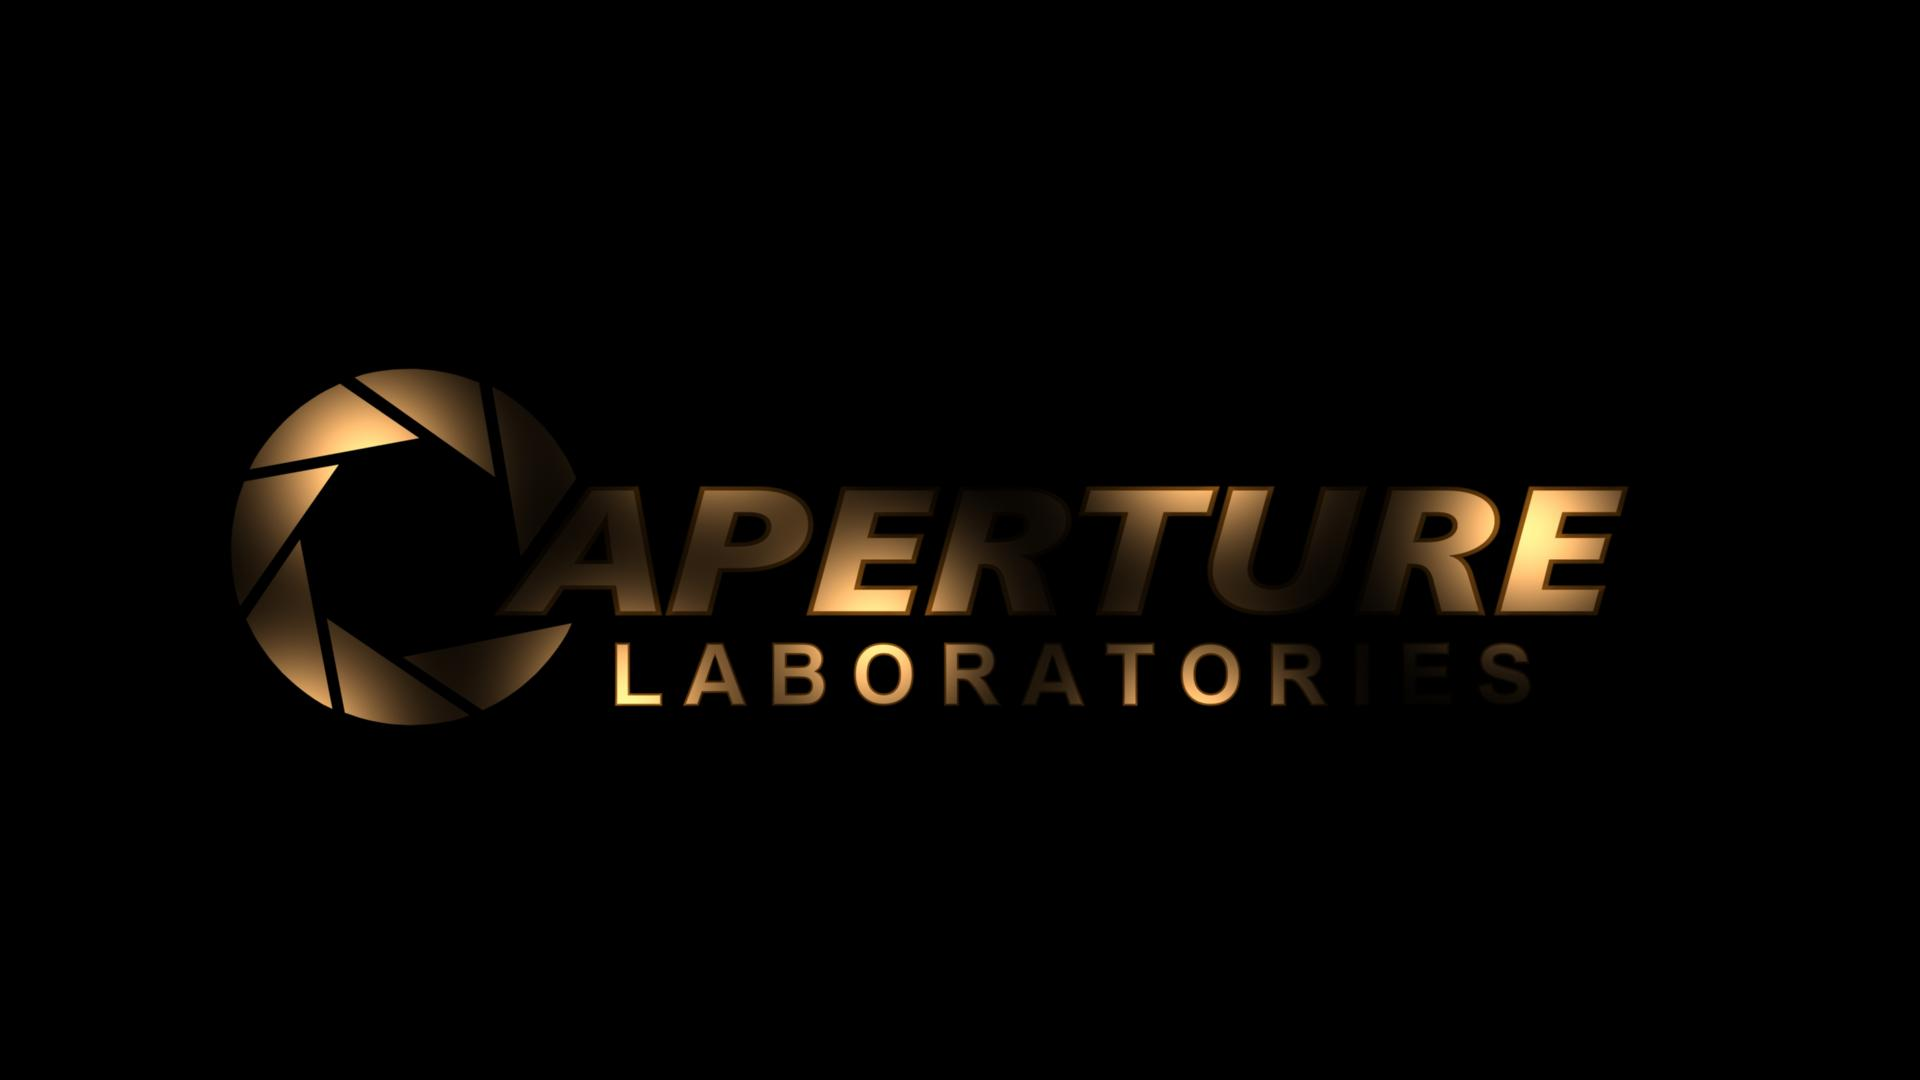 Aperture Science Wallpaper - WallpaperSafariAperture Science Innovators Wallpaper